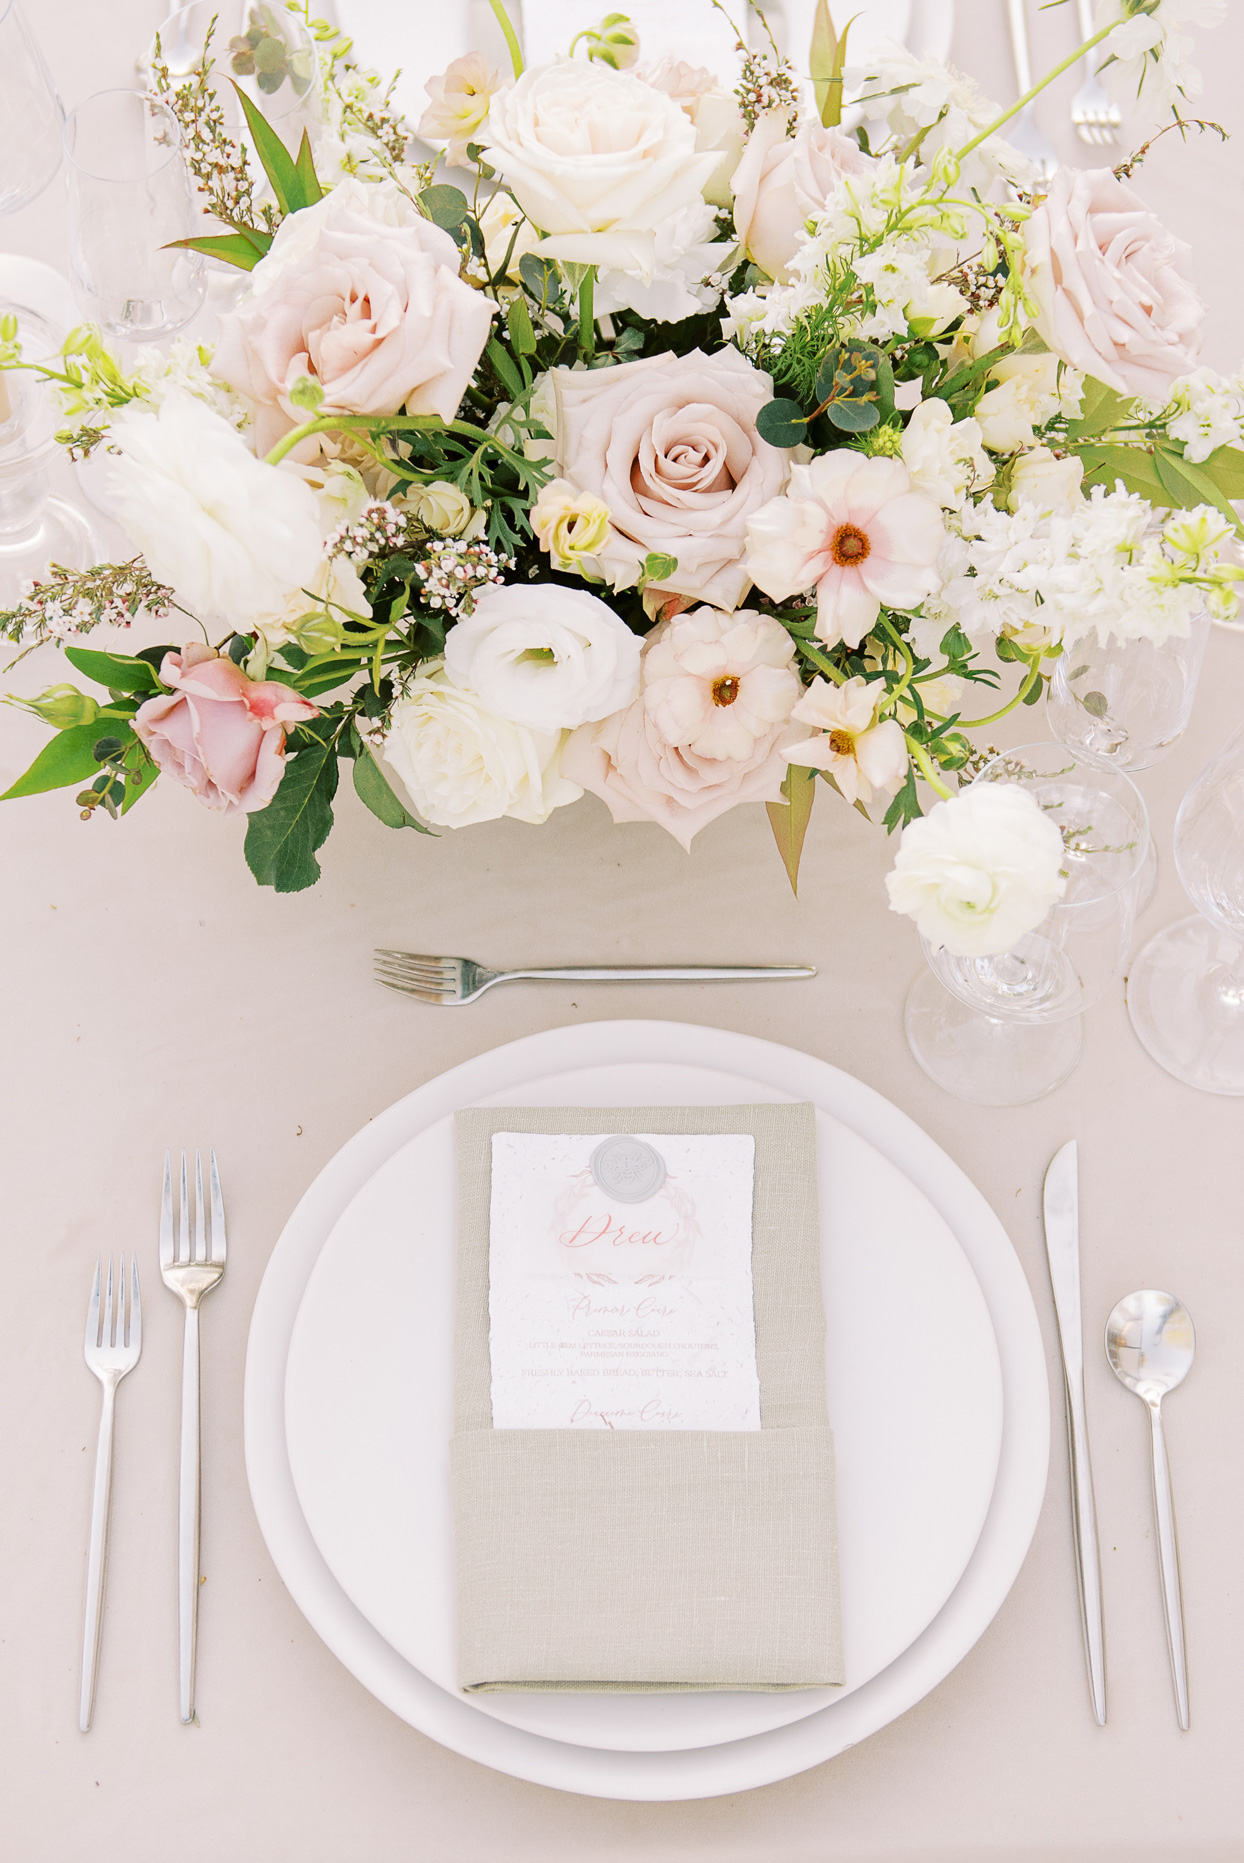 reception dinner table setting with natural colors